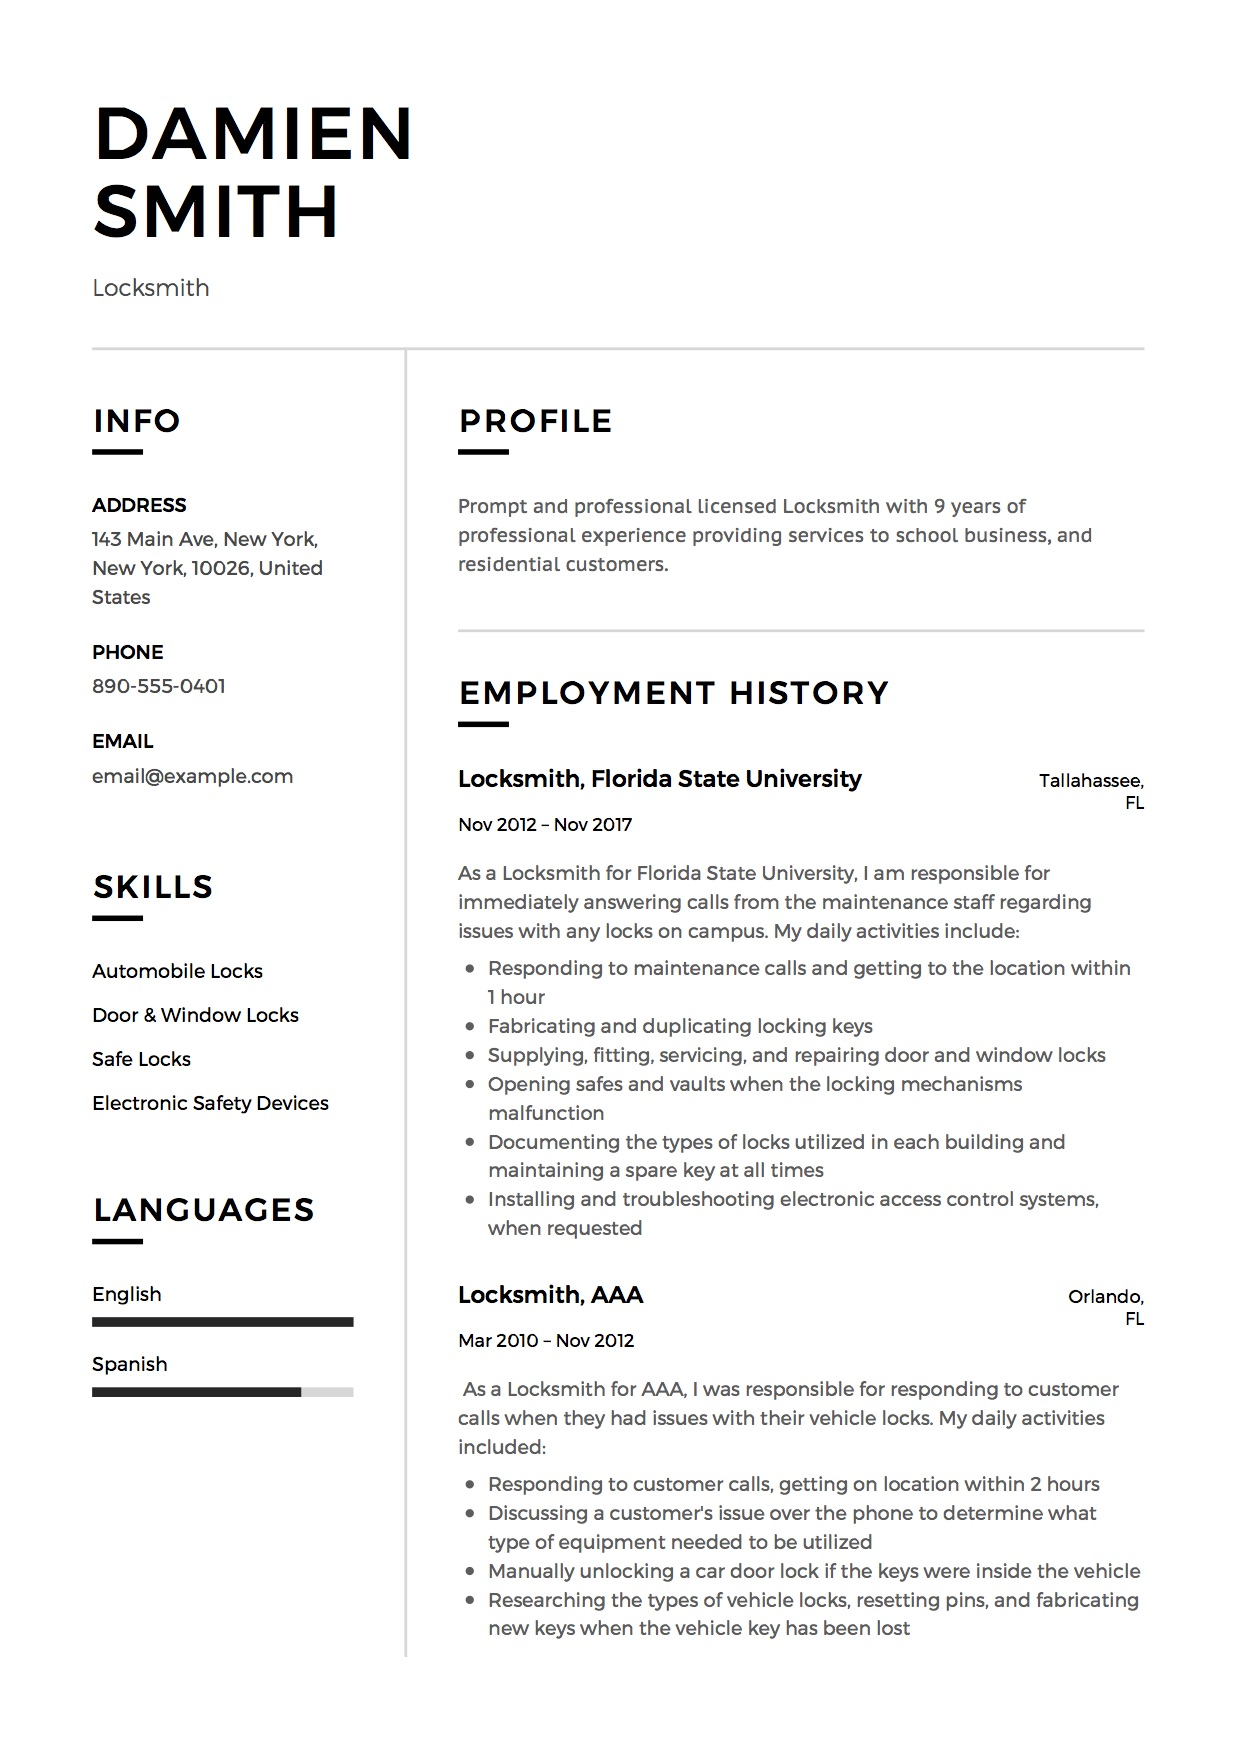 Resume Locksmith Design